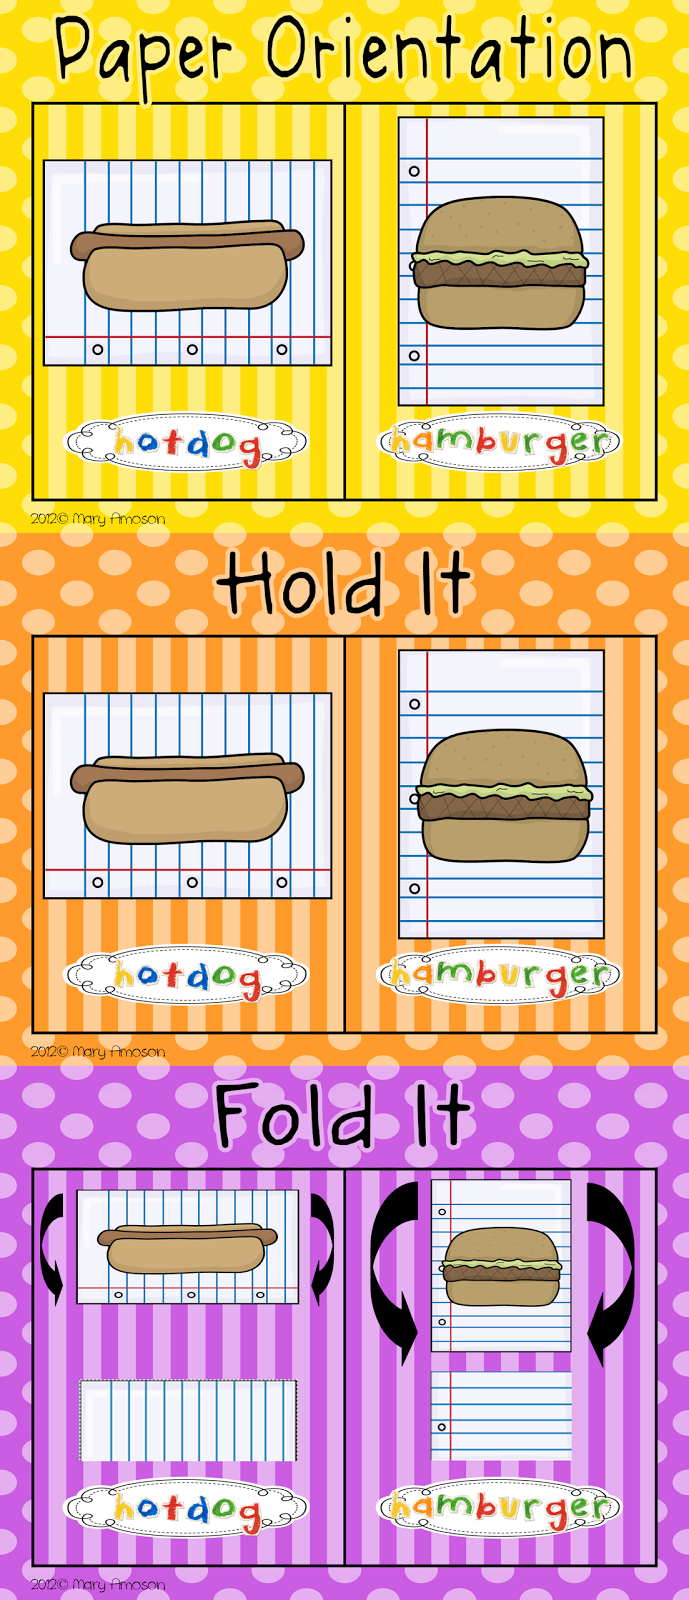 How To Fold A Paper Hot Dog Style